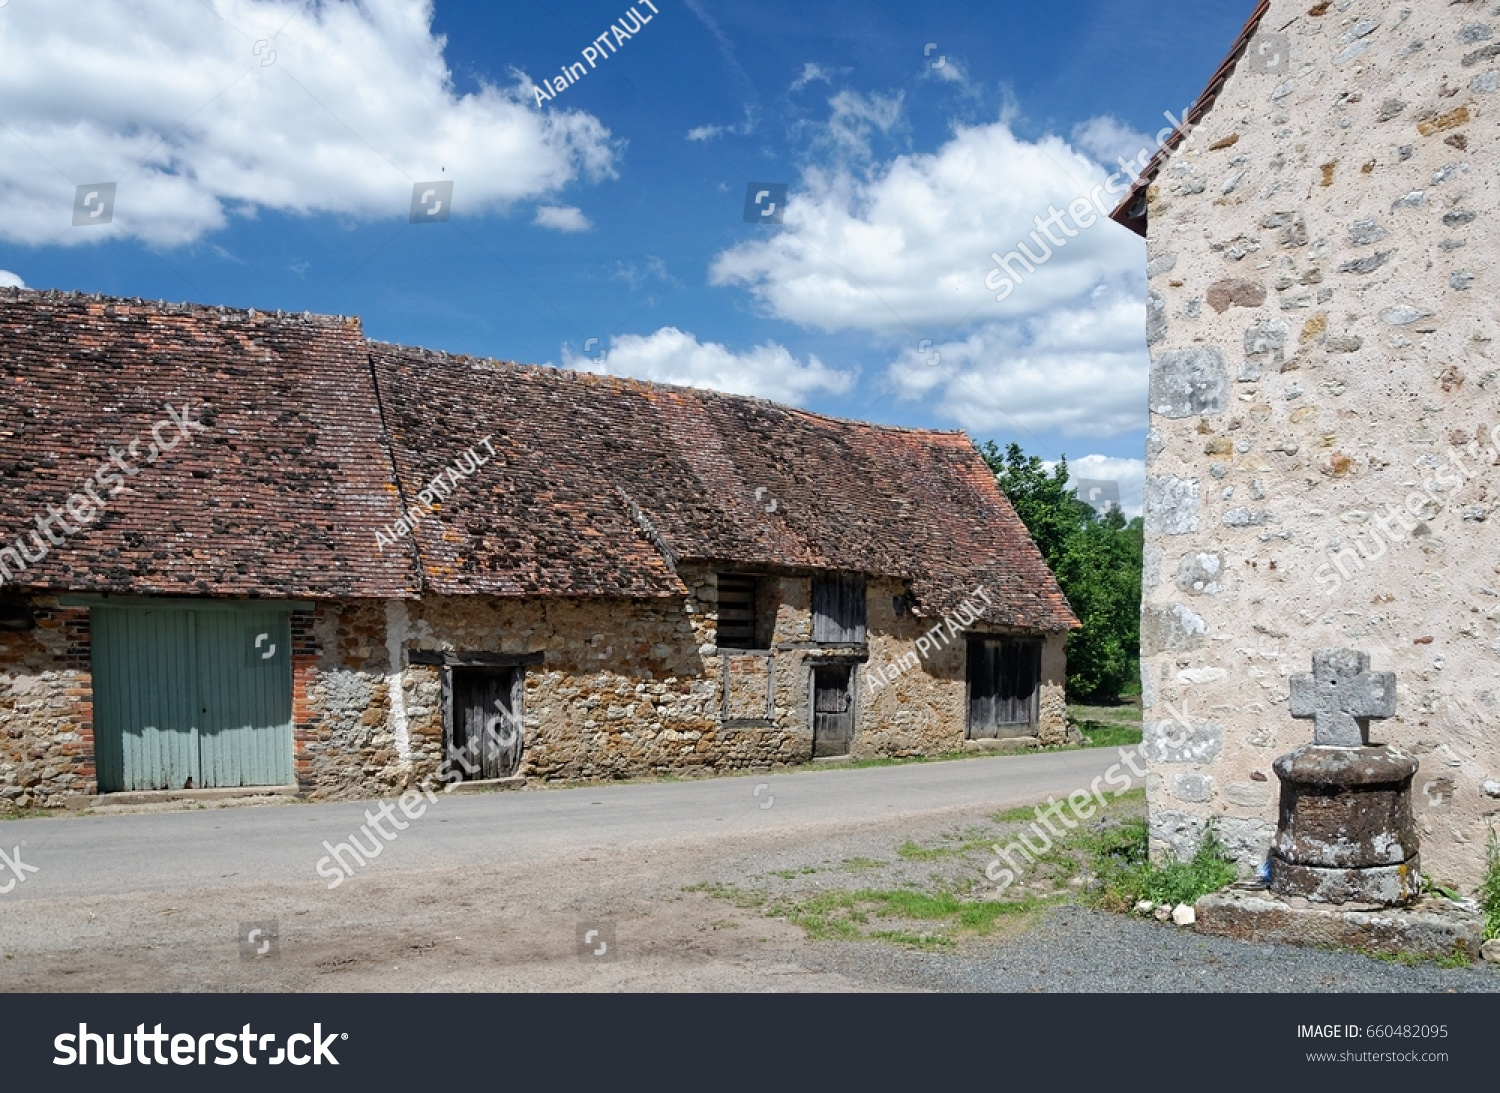 A view of old country houses with wooden doors and red tile roofs the stone